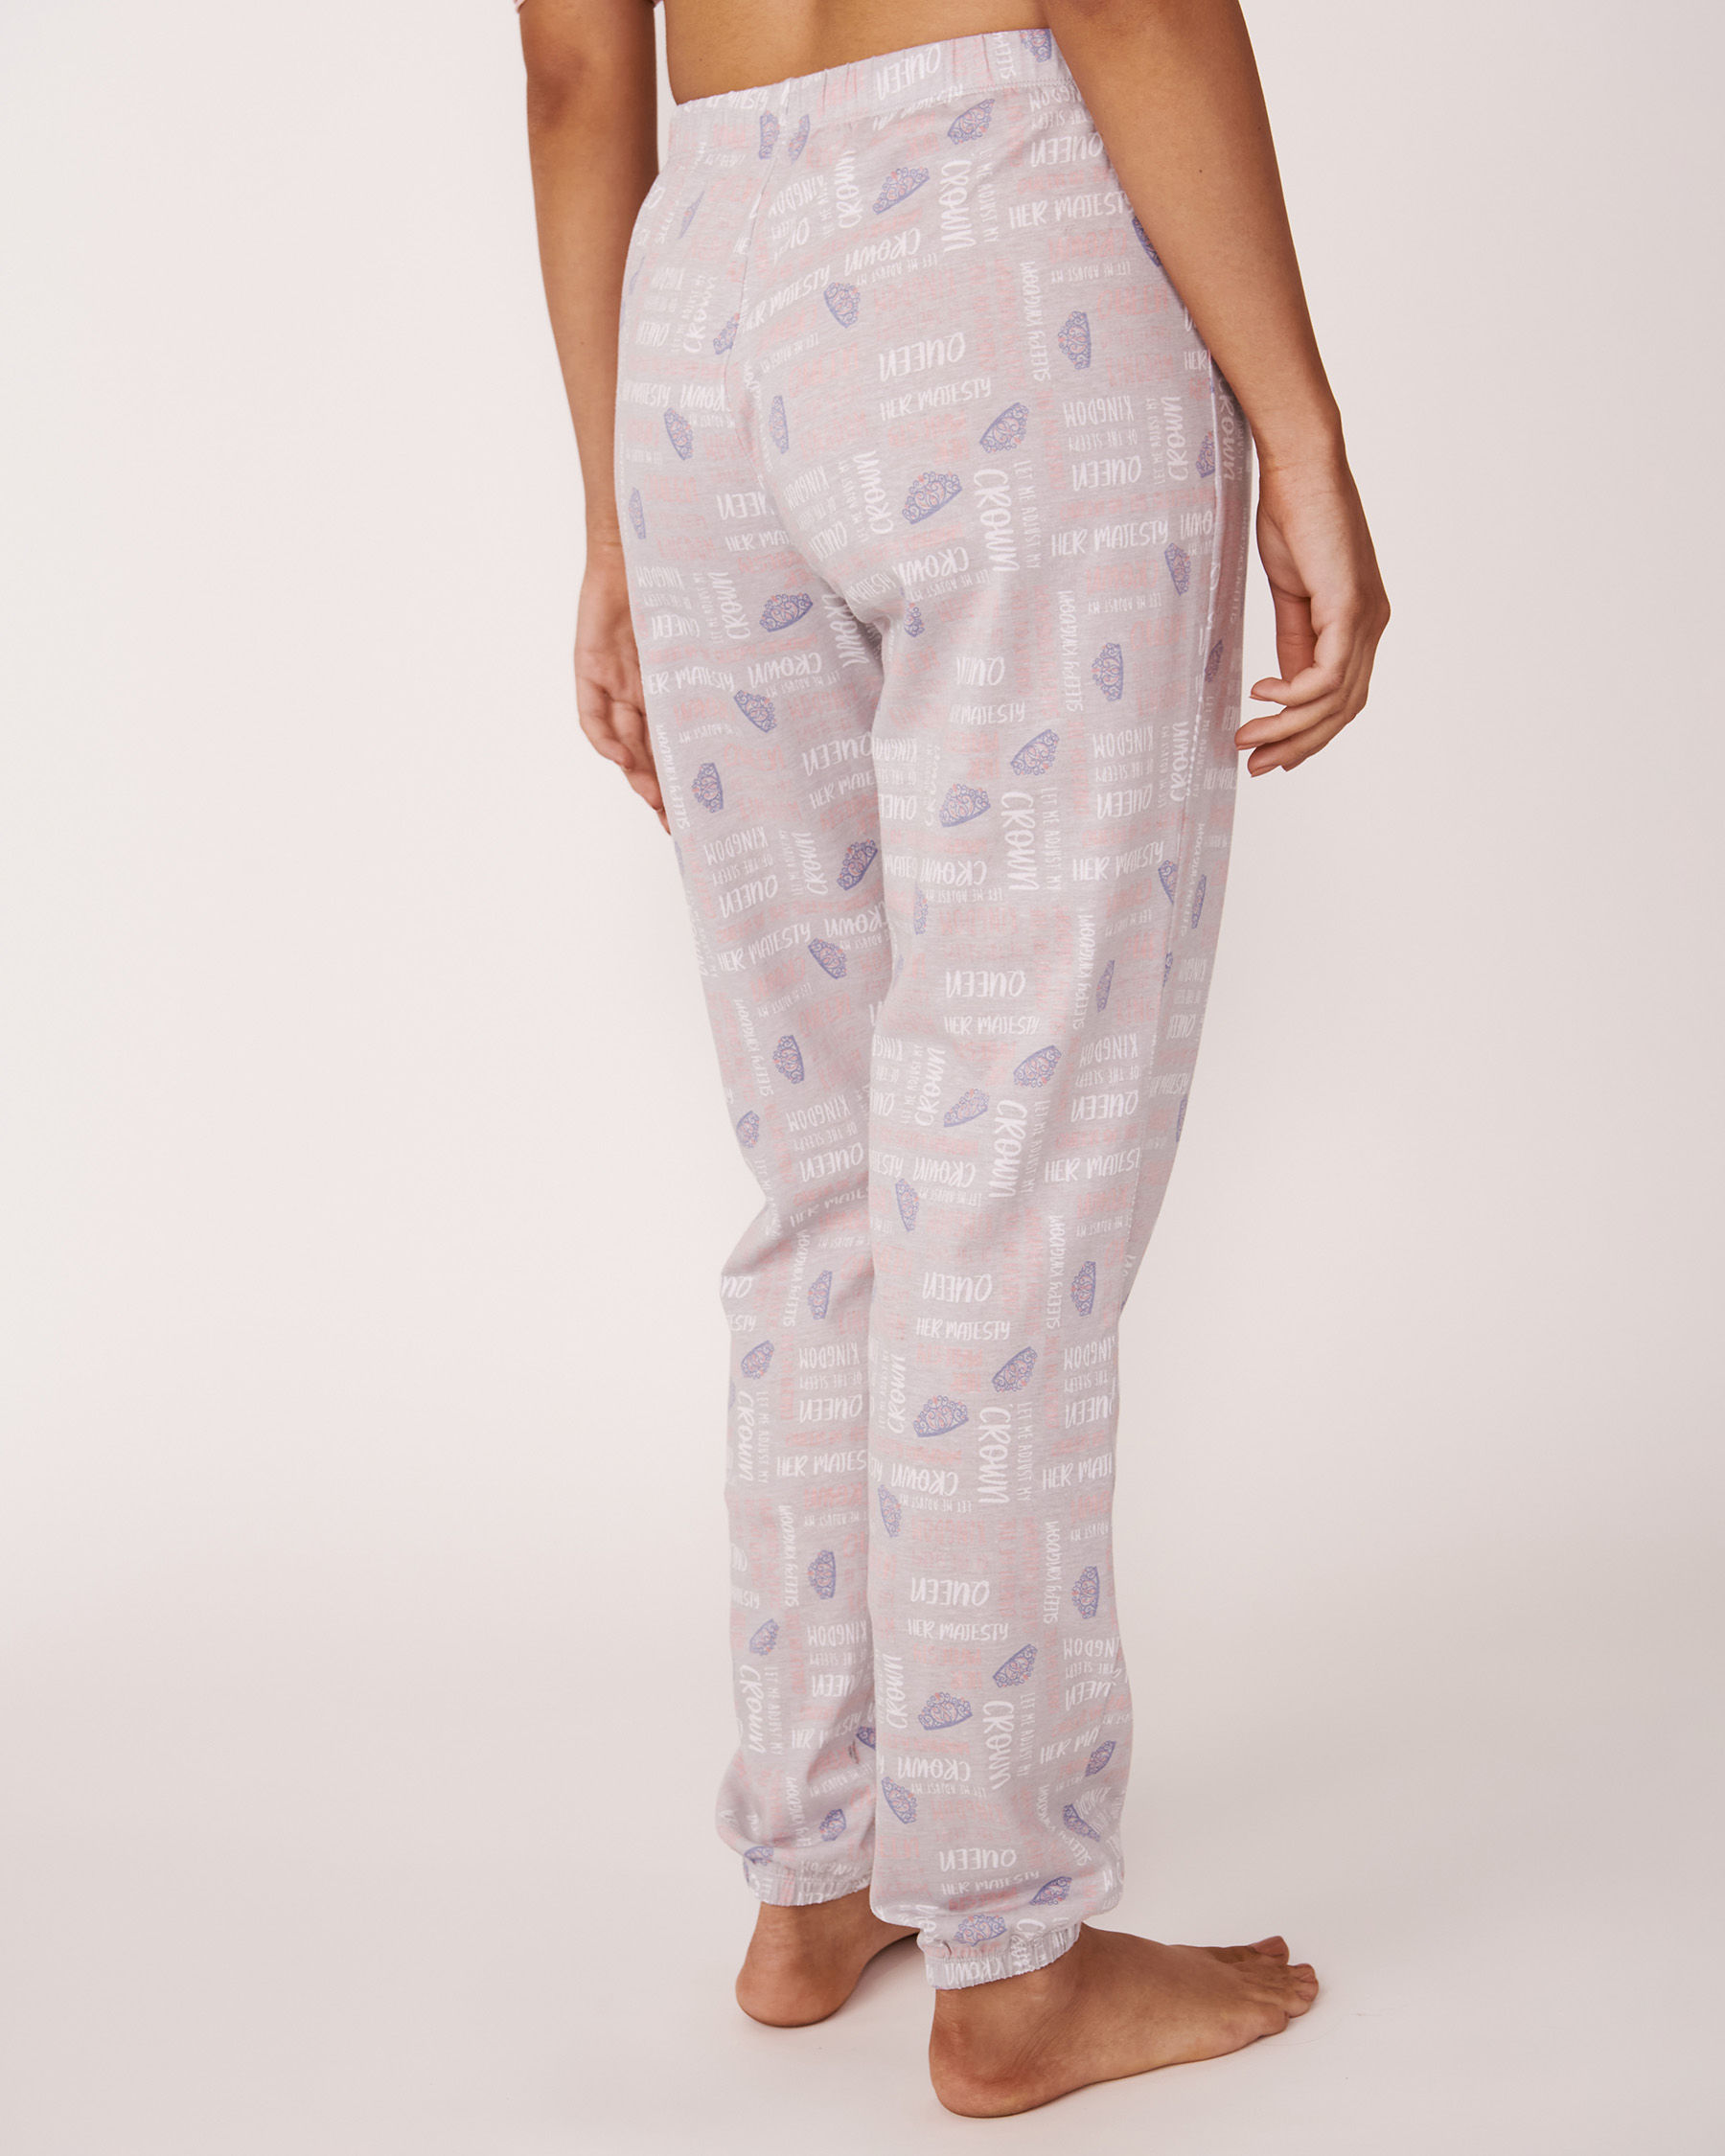 LA VIE EN ROSE Fitted Pant Text and print 40200020 - View2